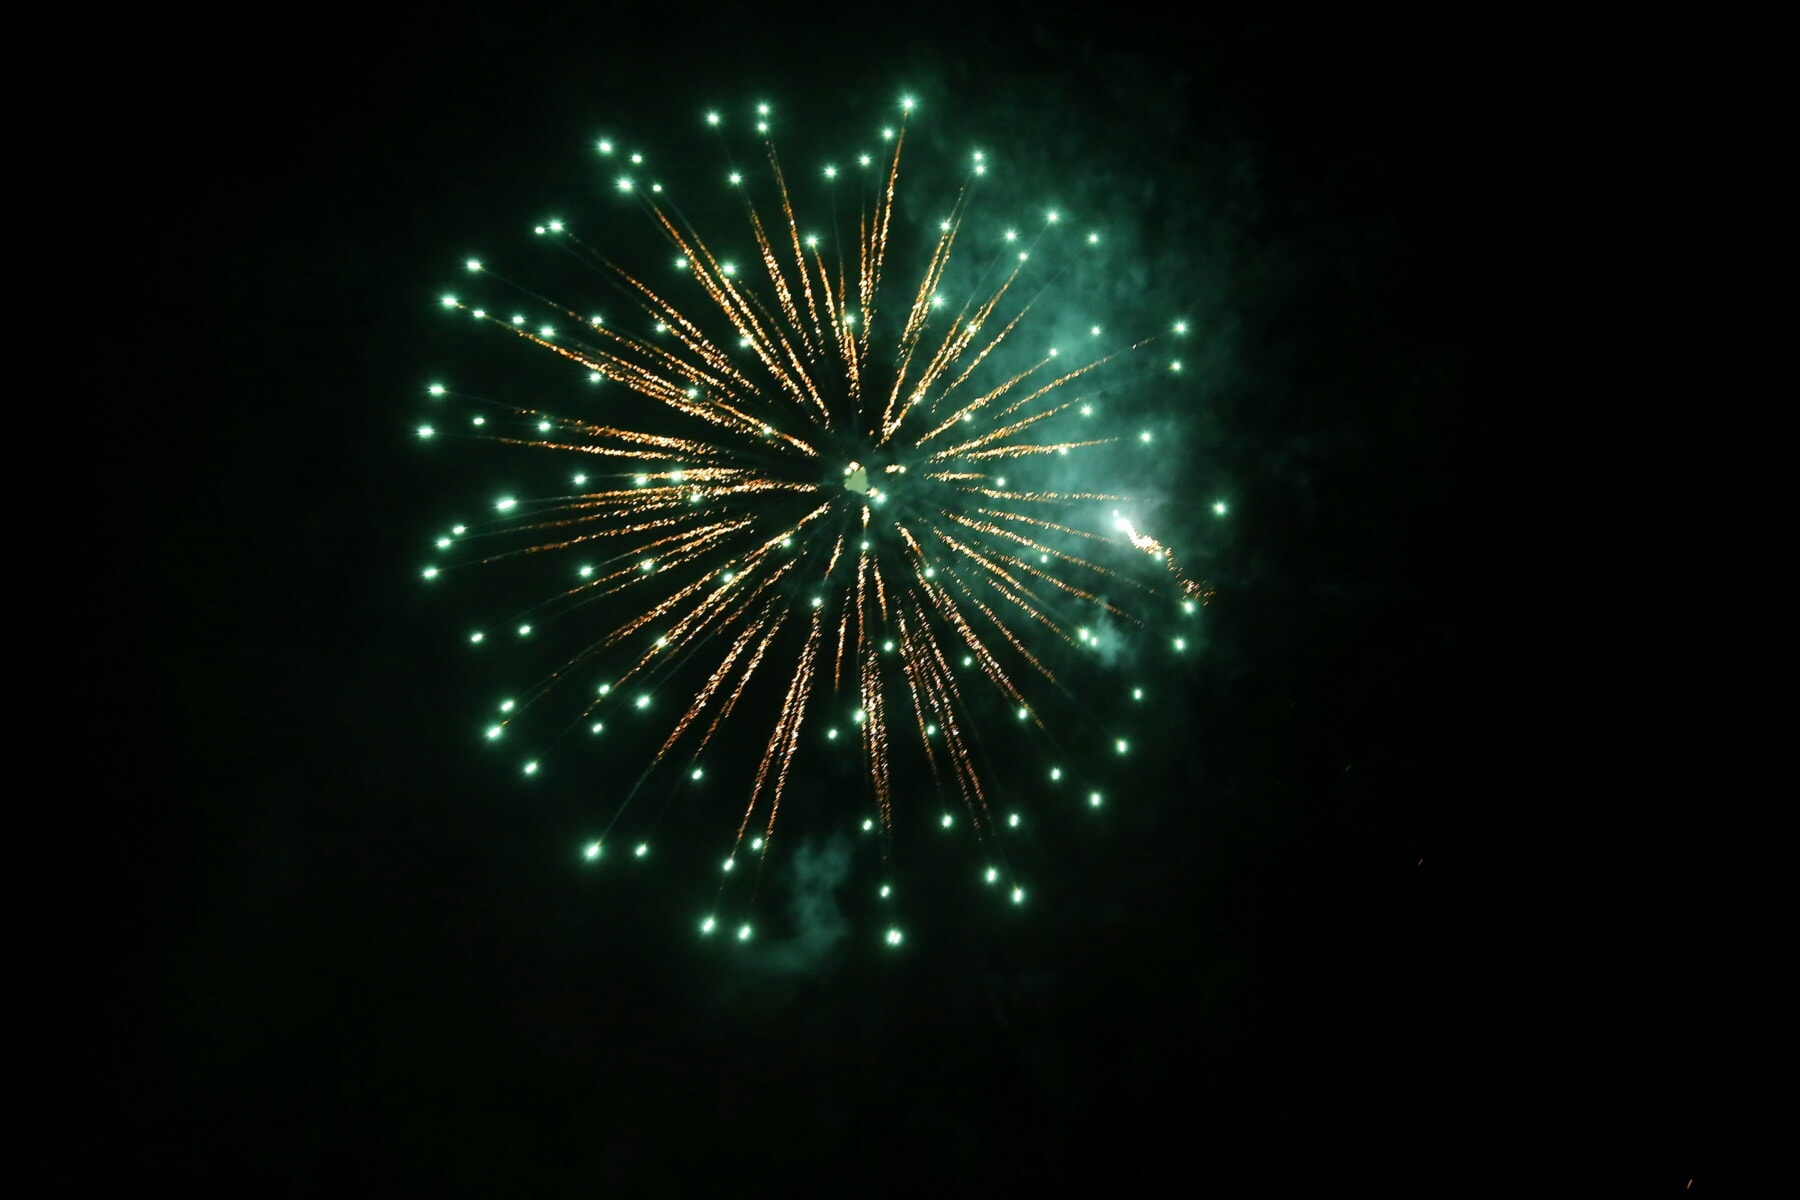 new year, fireworks, spark, nighttime, night, green light, festival, celebration, firework, explosion